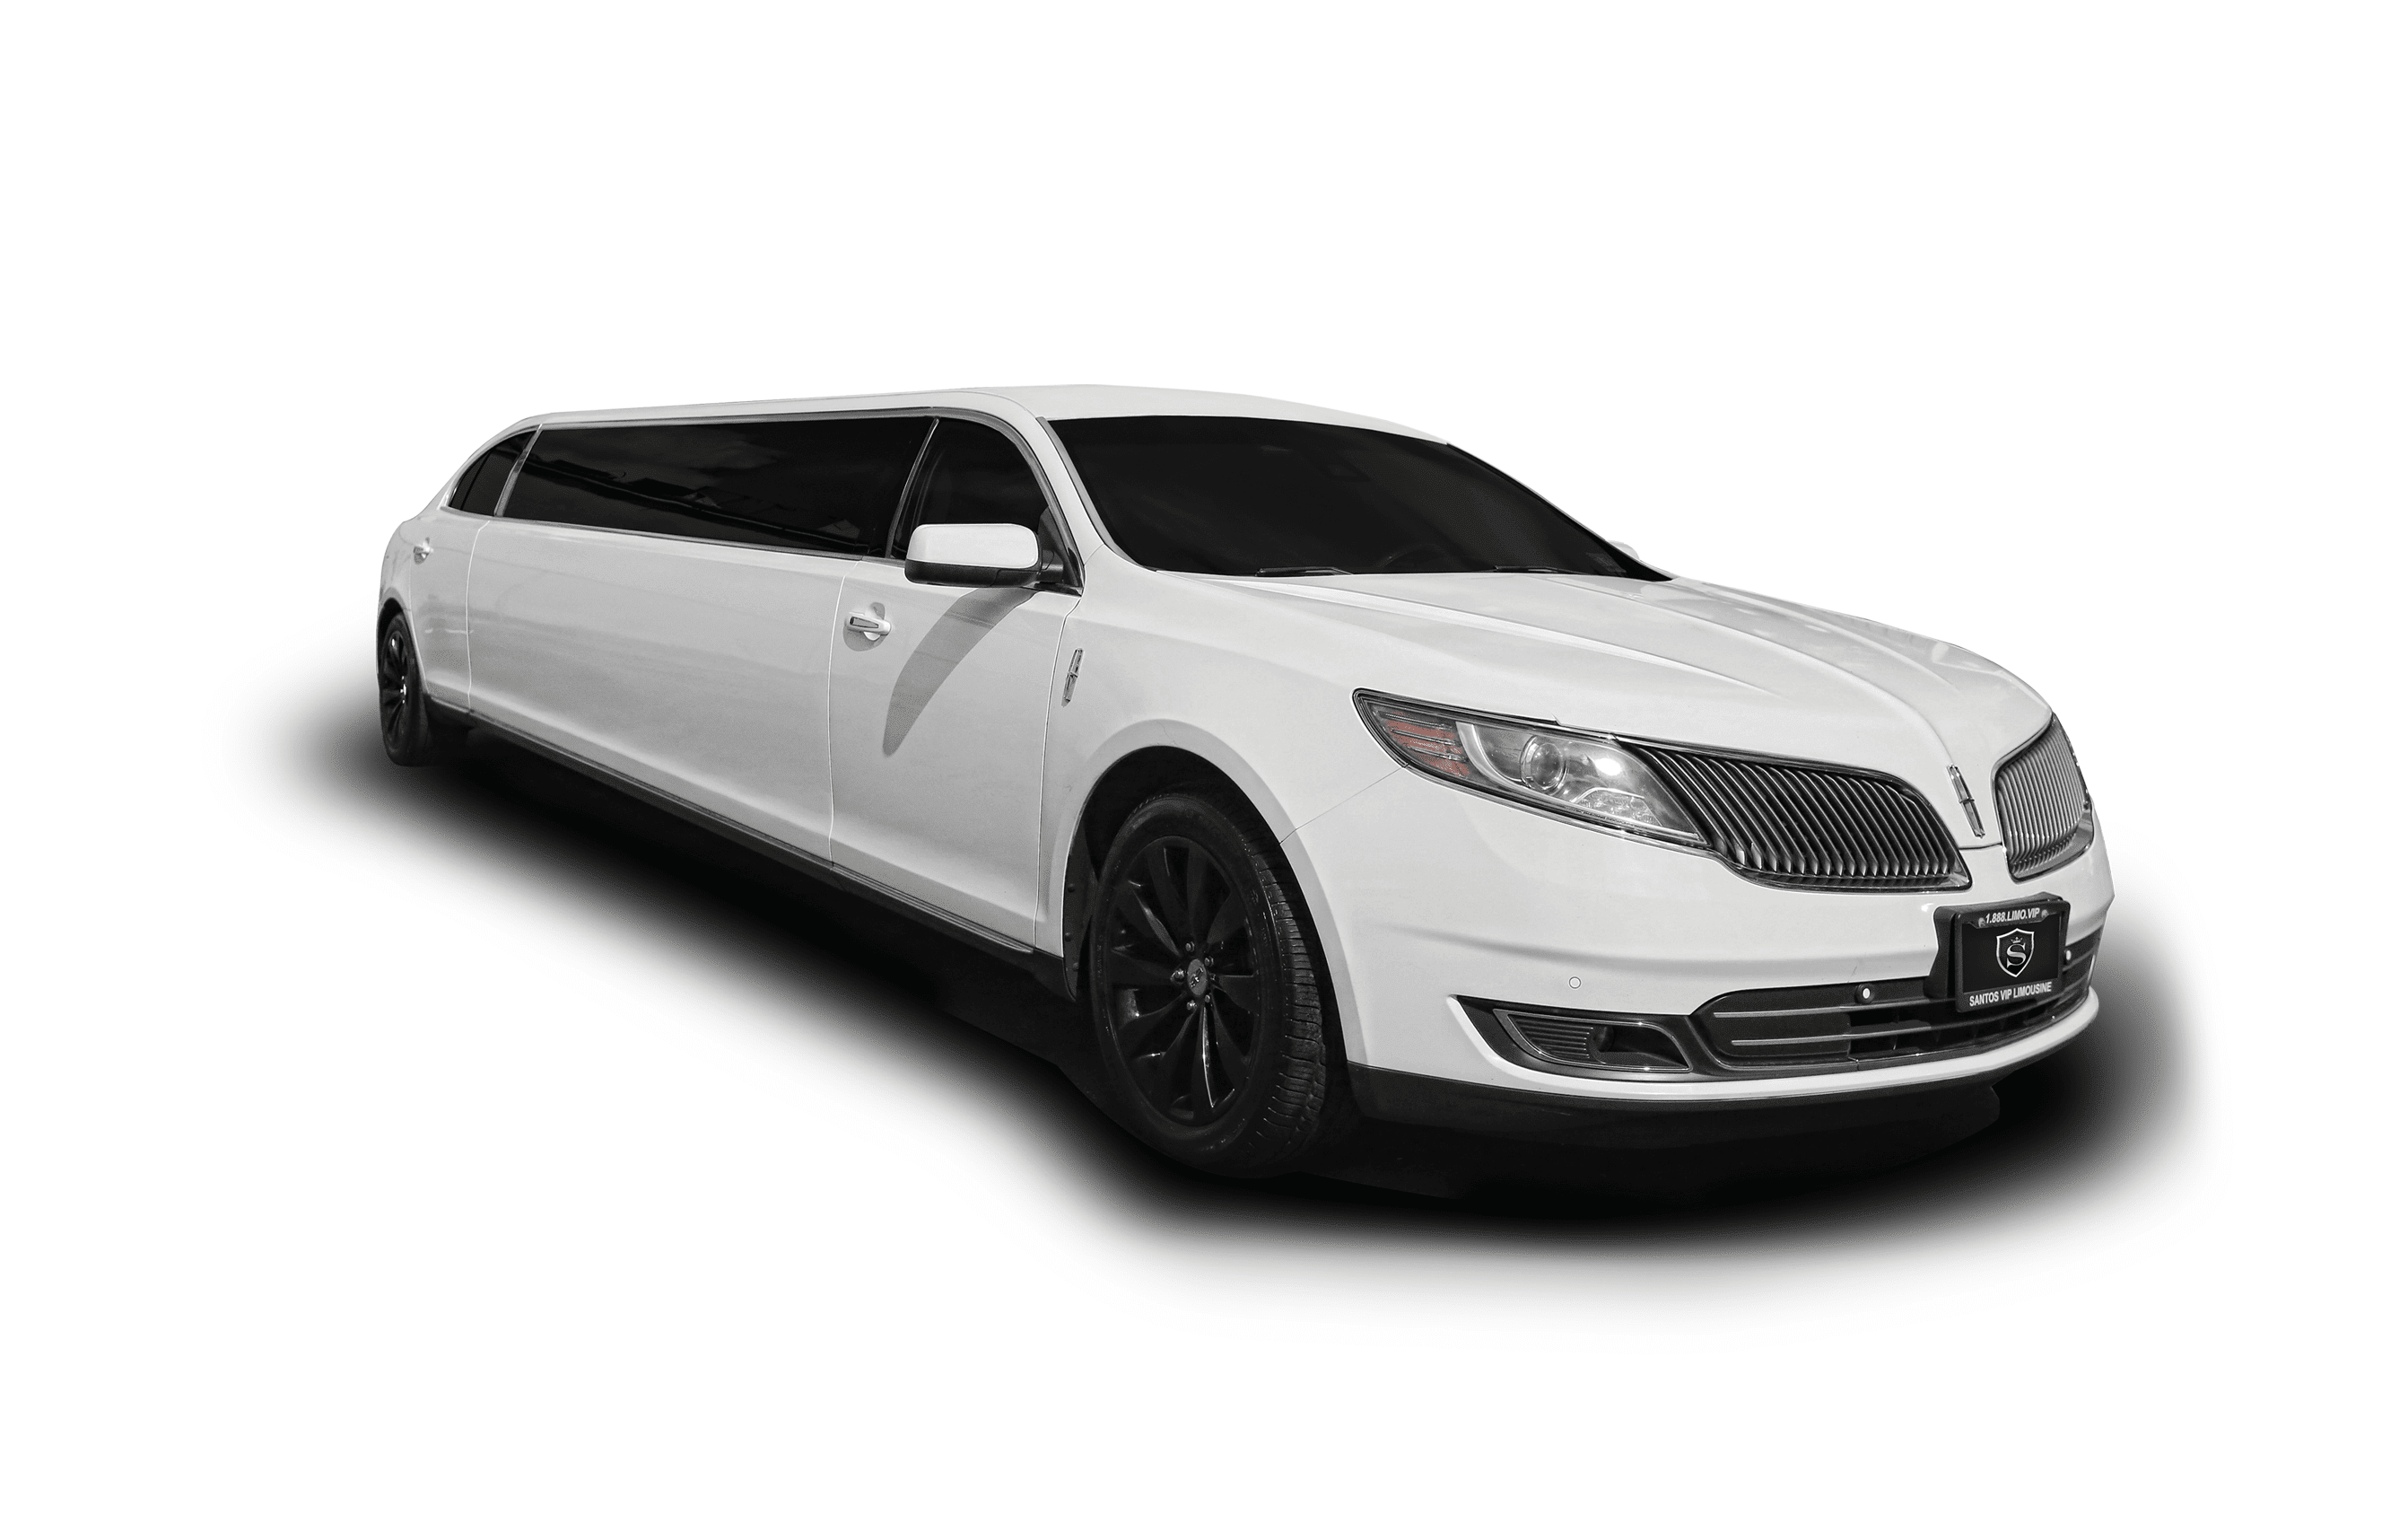 bachelorette party limo Lincoln MKS Stretch Limousine